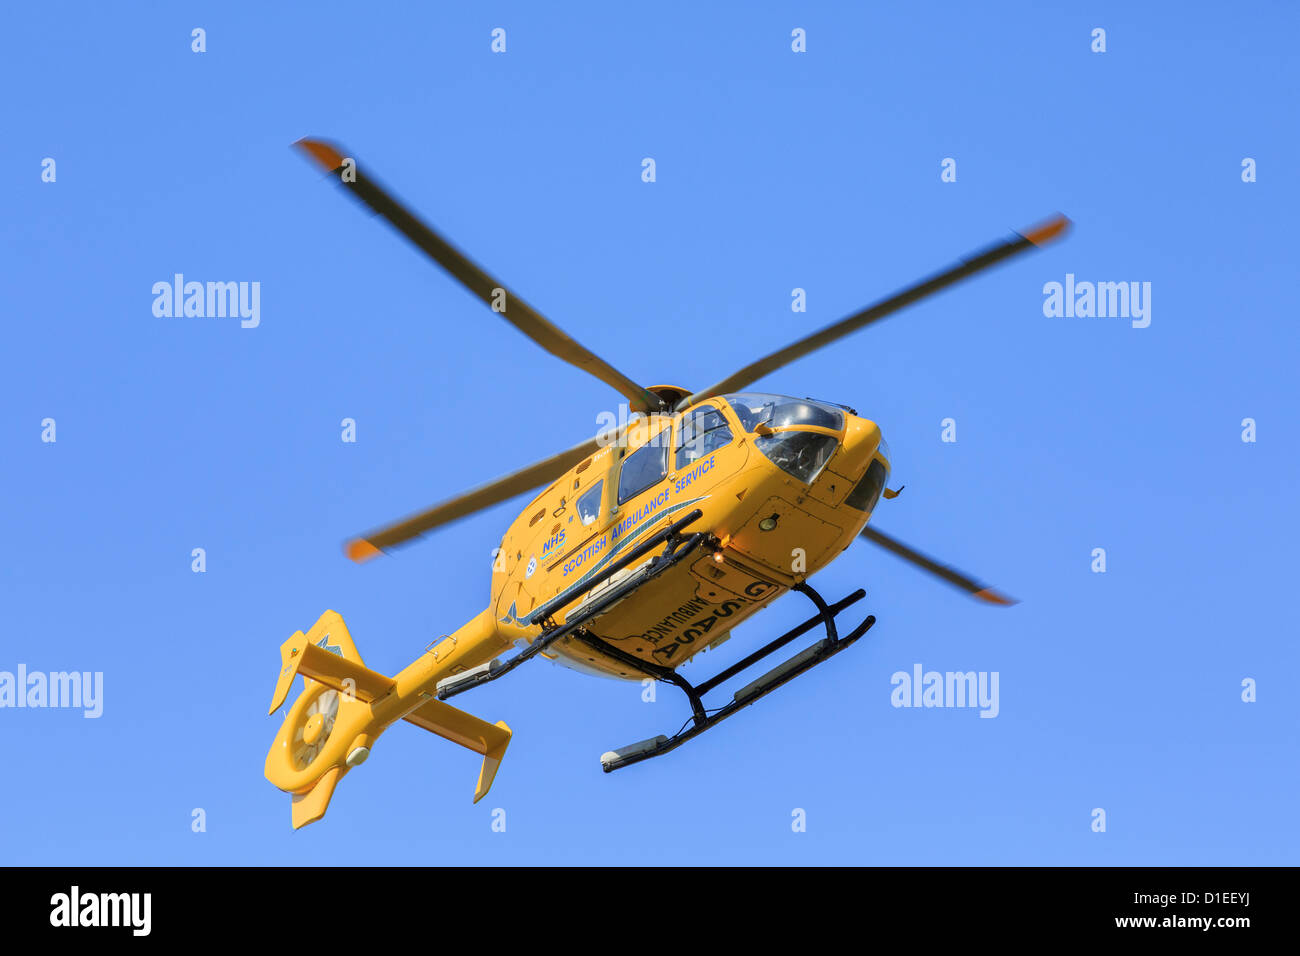 Yellow Scottish Air Ambulance Service Helicopter flying overhead from a rescue mission seen from below against a Stock Photo